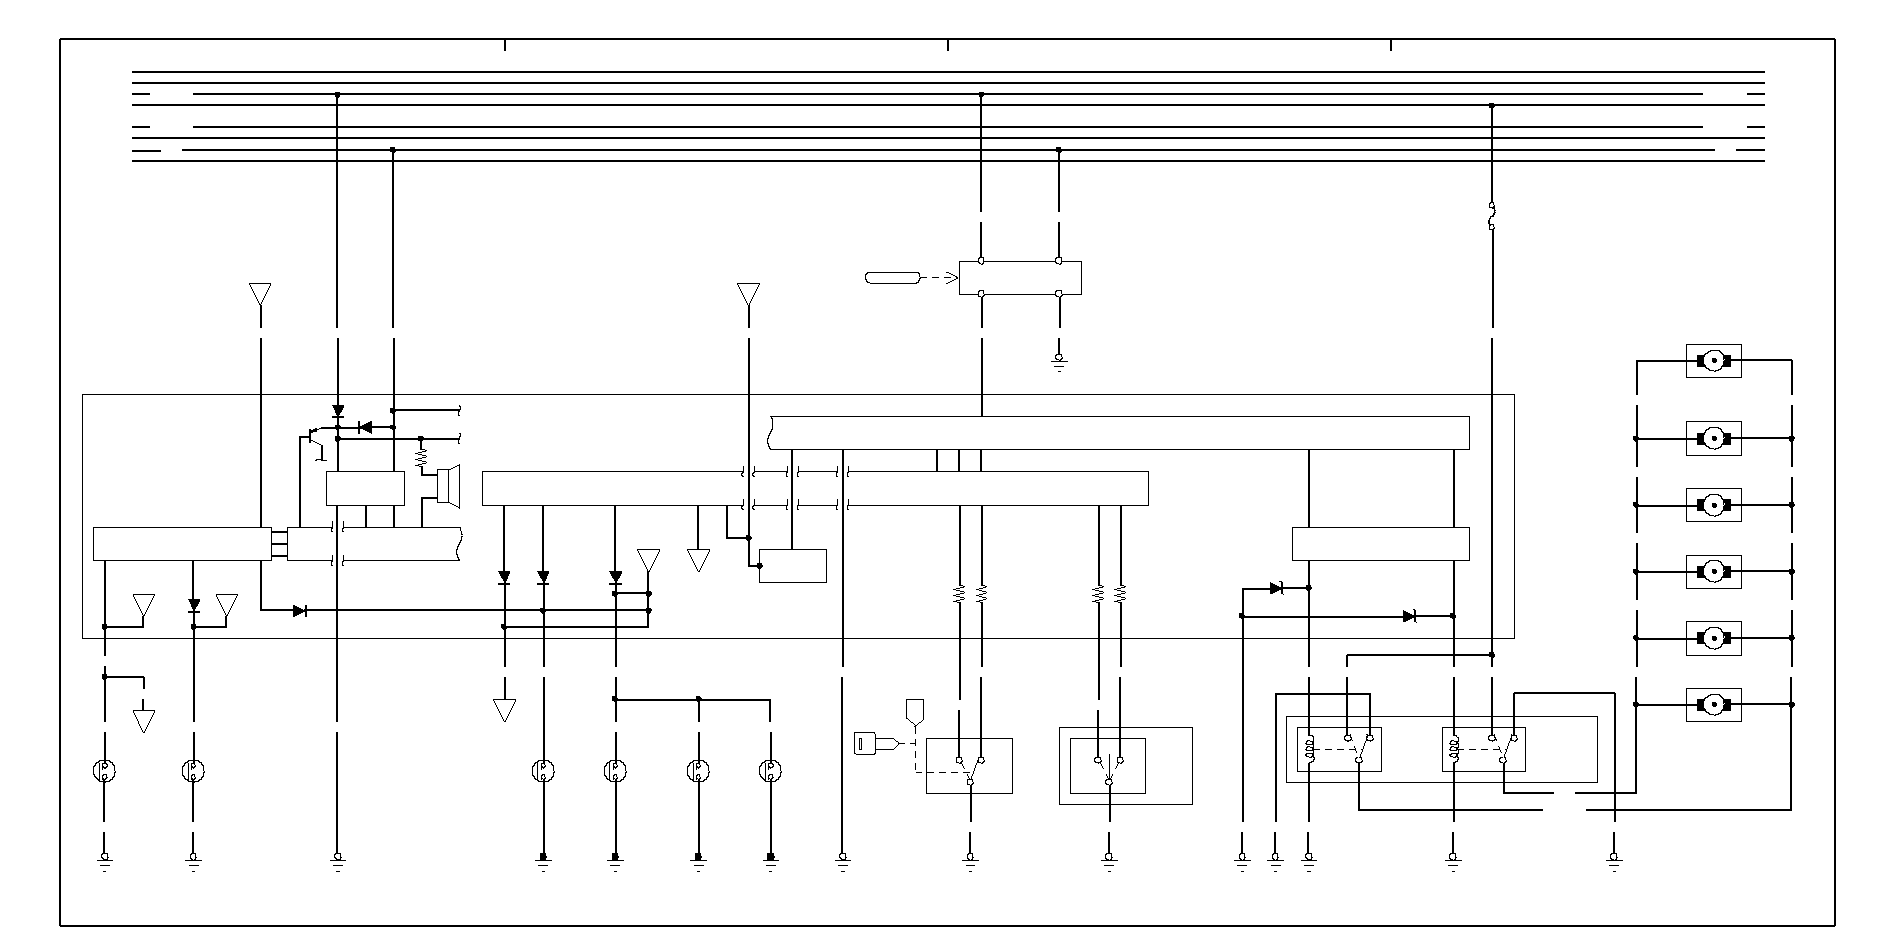 wiring diagram honda jazz wiring image wiring diagram wiring diagram on wiring diagram honda jazz